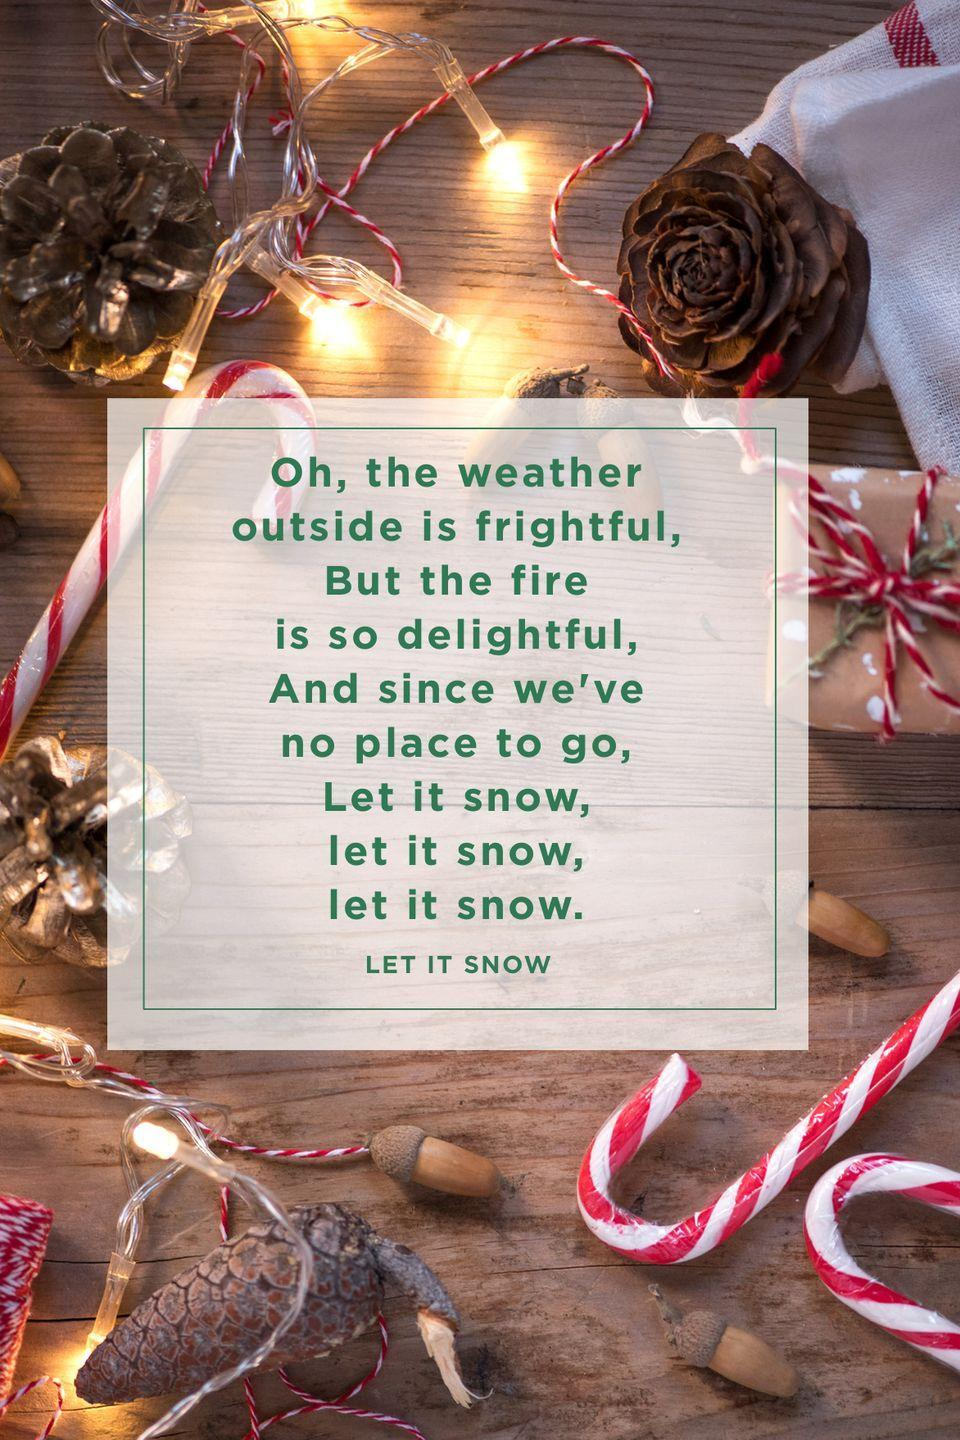 """<p>""""Oh the weather outside is frightful,<br>But the fire is so delightful,<br>And since we've no place to go,<br>Let it snow, let it snow, let it snow.""""</p>"""